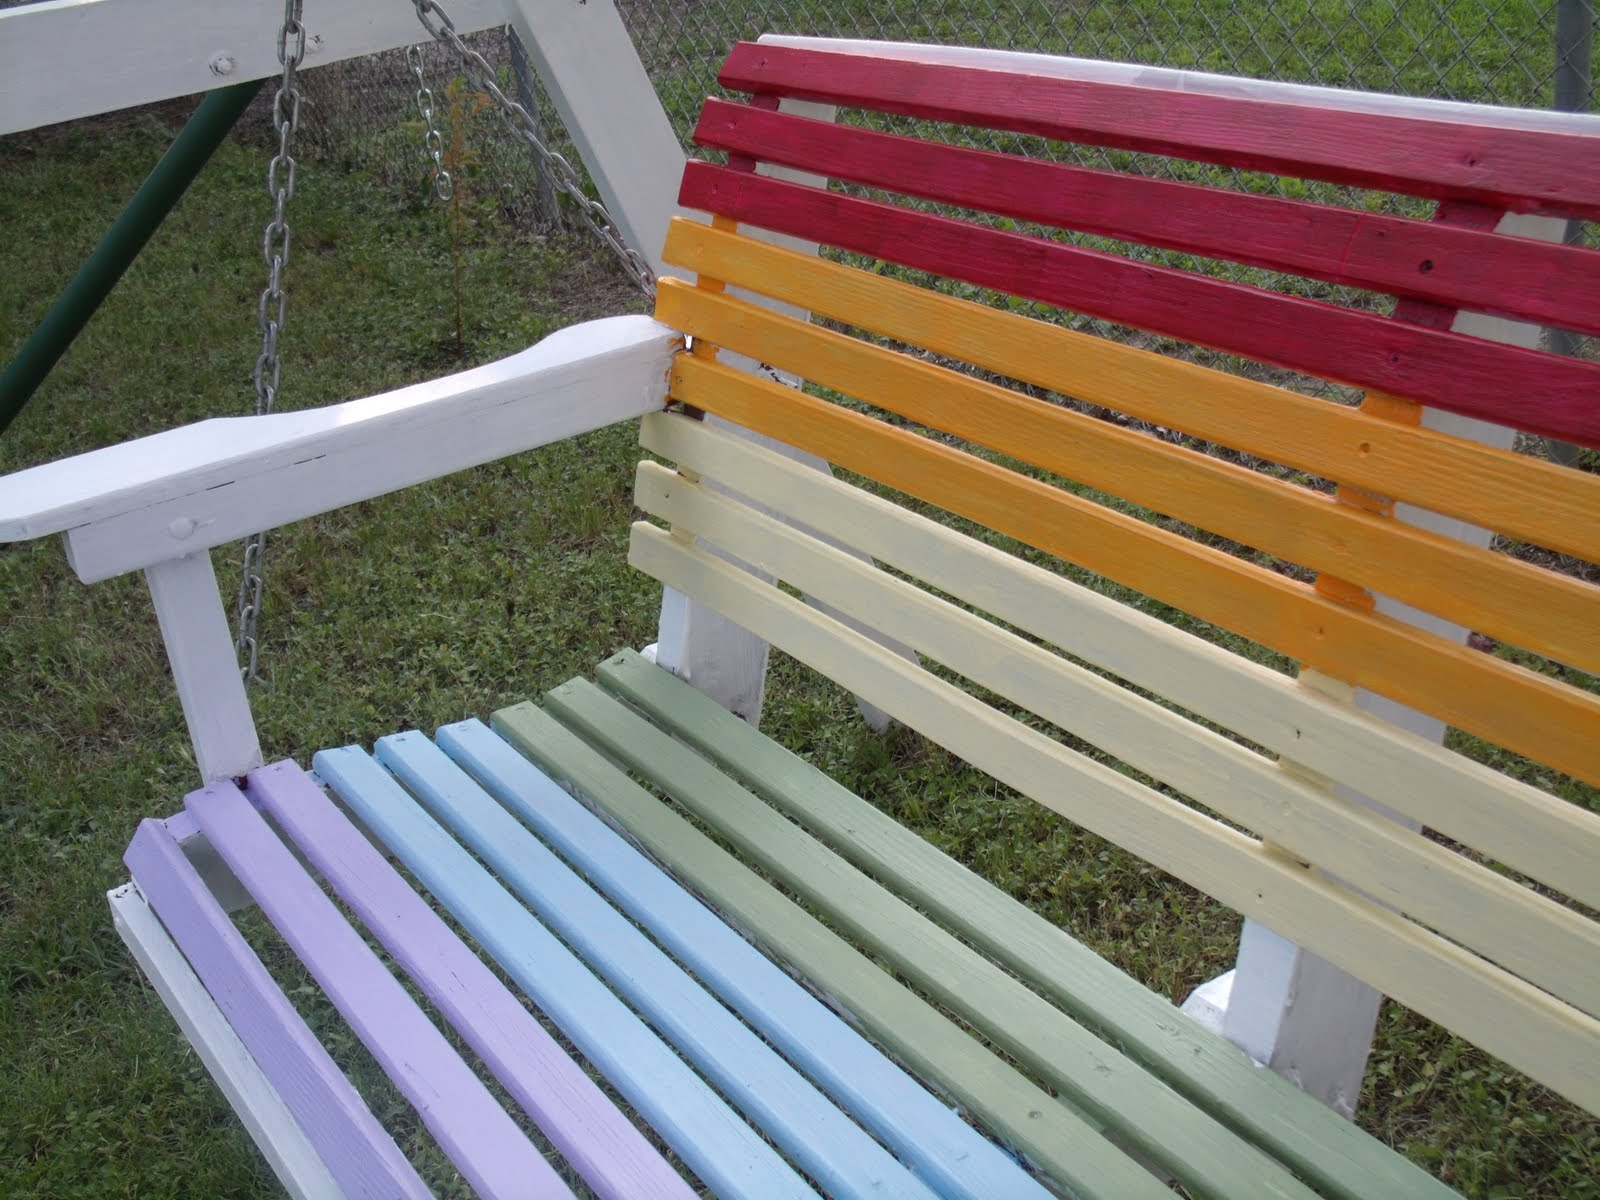 Backyard makeover on a budget - One Mama's Daily Drama on Patio Makeovers On A Budget id=84709